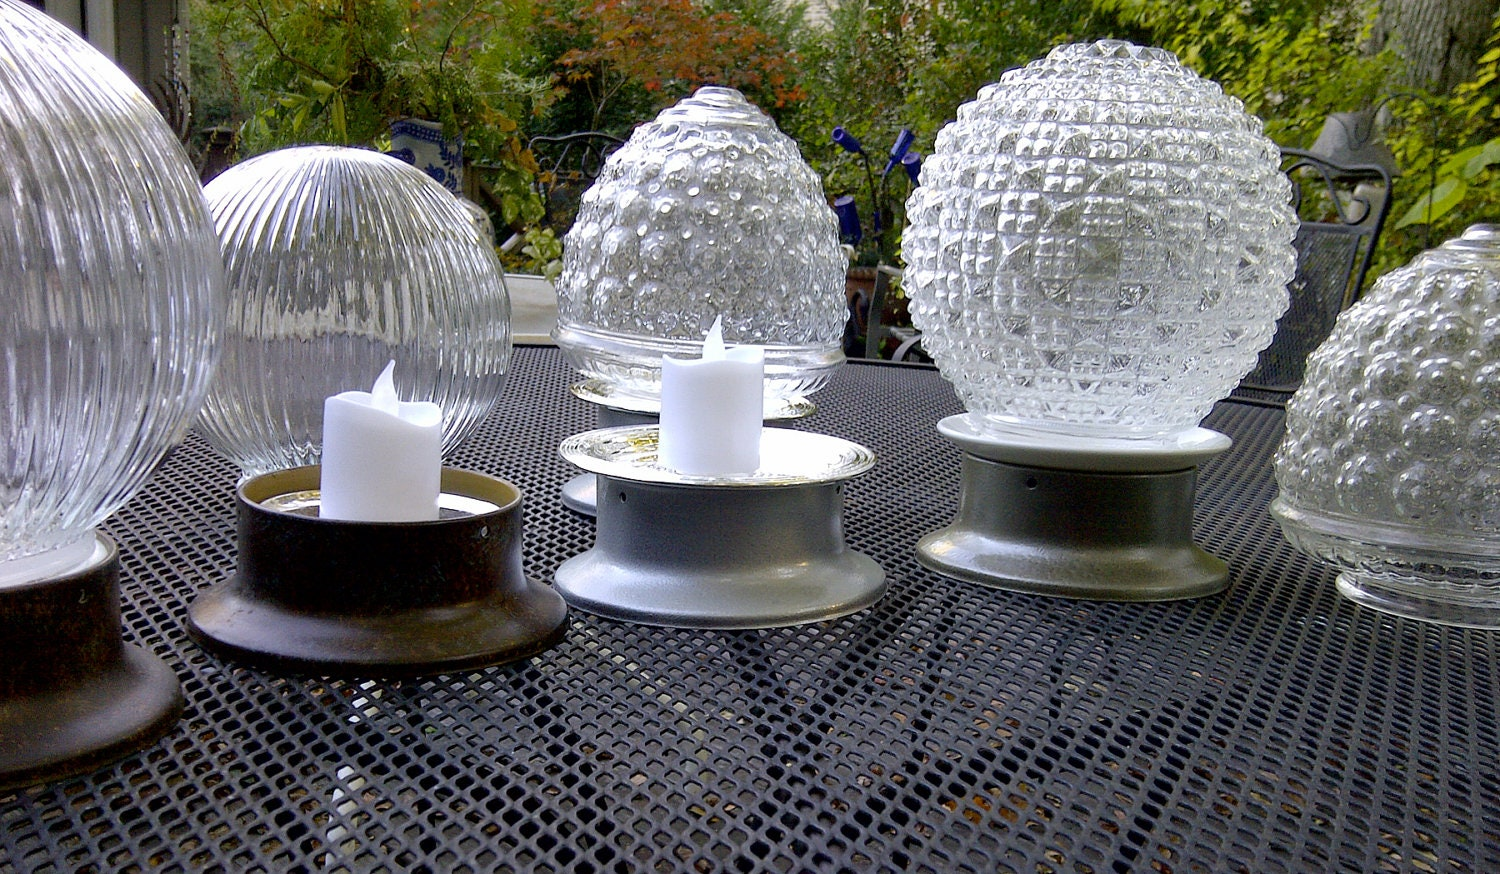 Items similar to outdoor accent globe candle lights on etsy for Yard accent lights